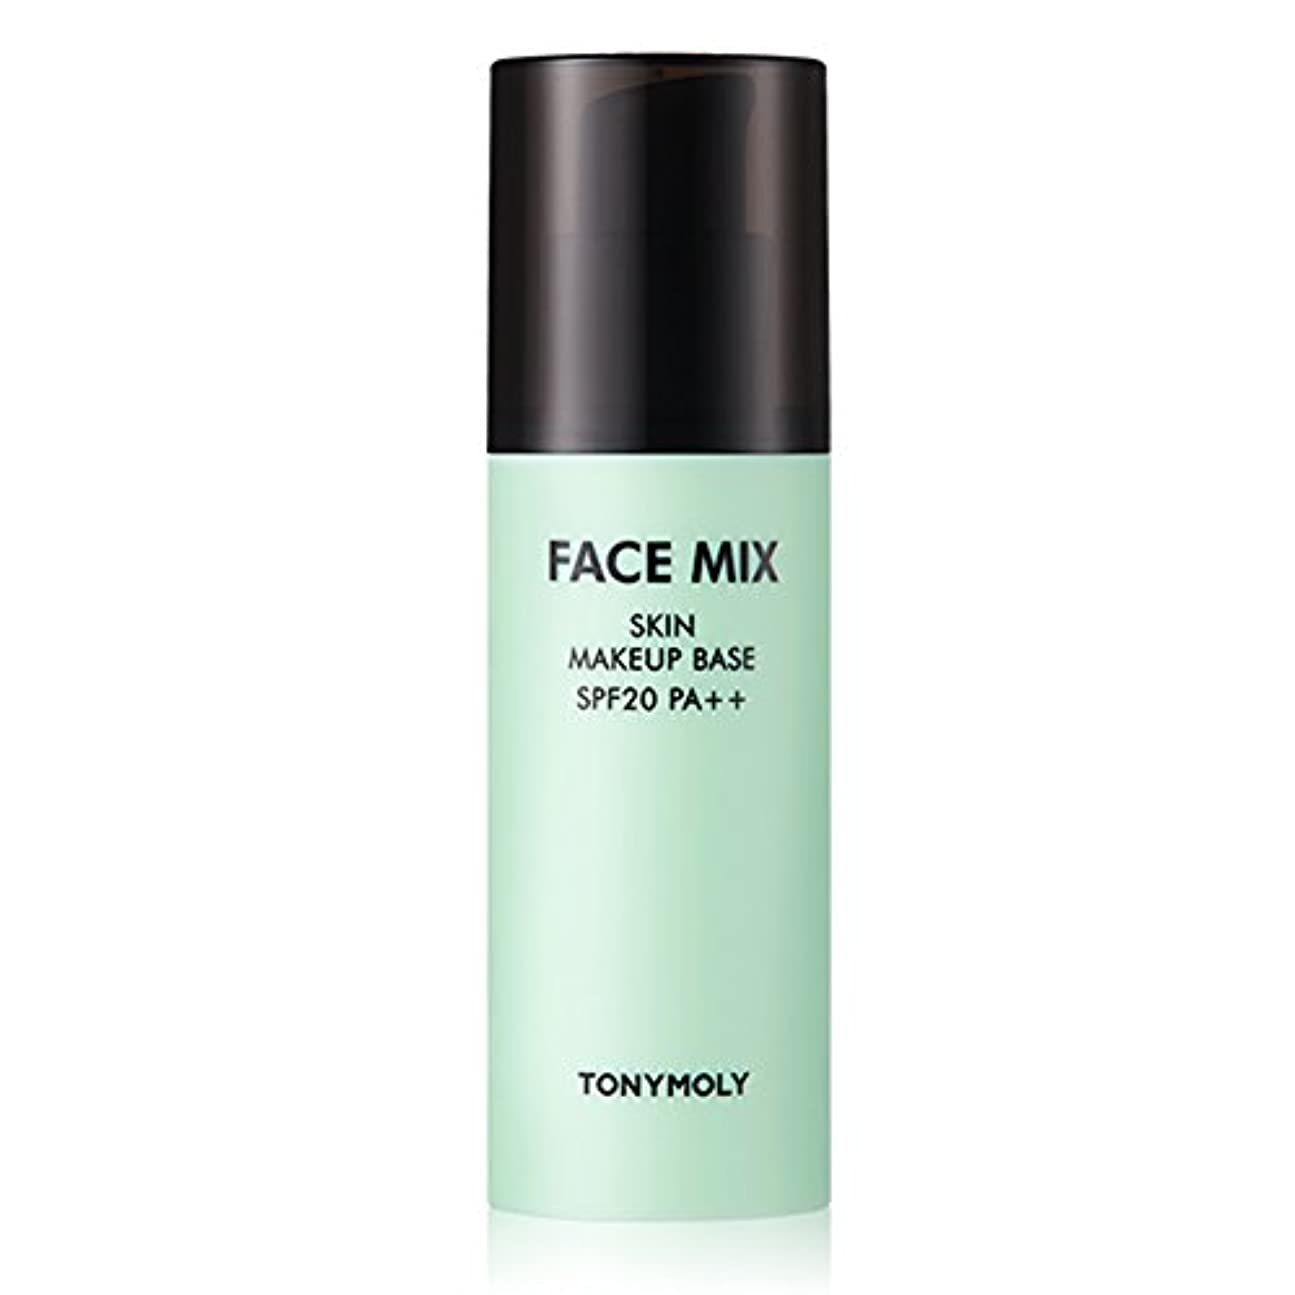 先例推定する食べるTONYMOLY FACE MIX SKIN MAKEUP BASE 01 MIX GREEN SPF20 PA+++ 30g